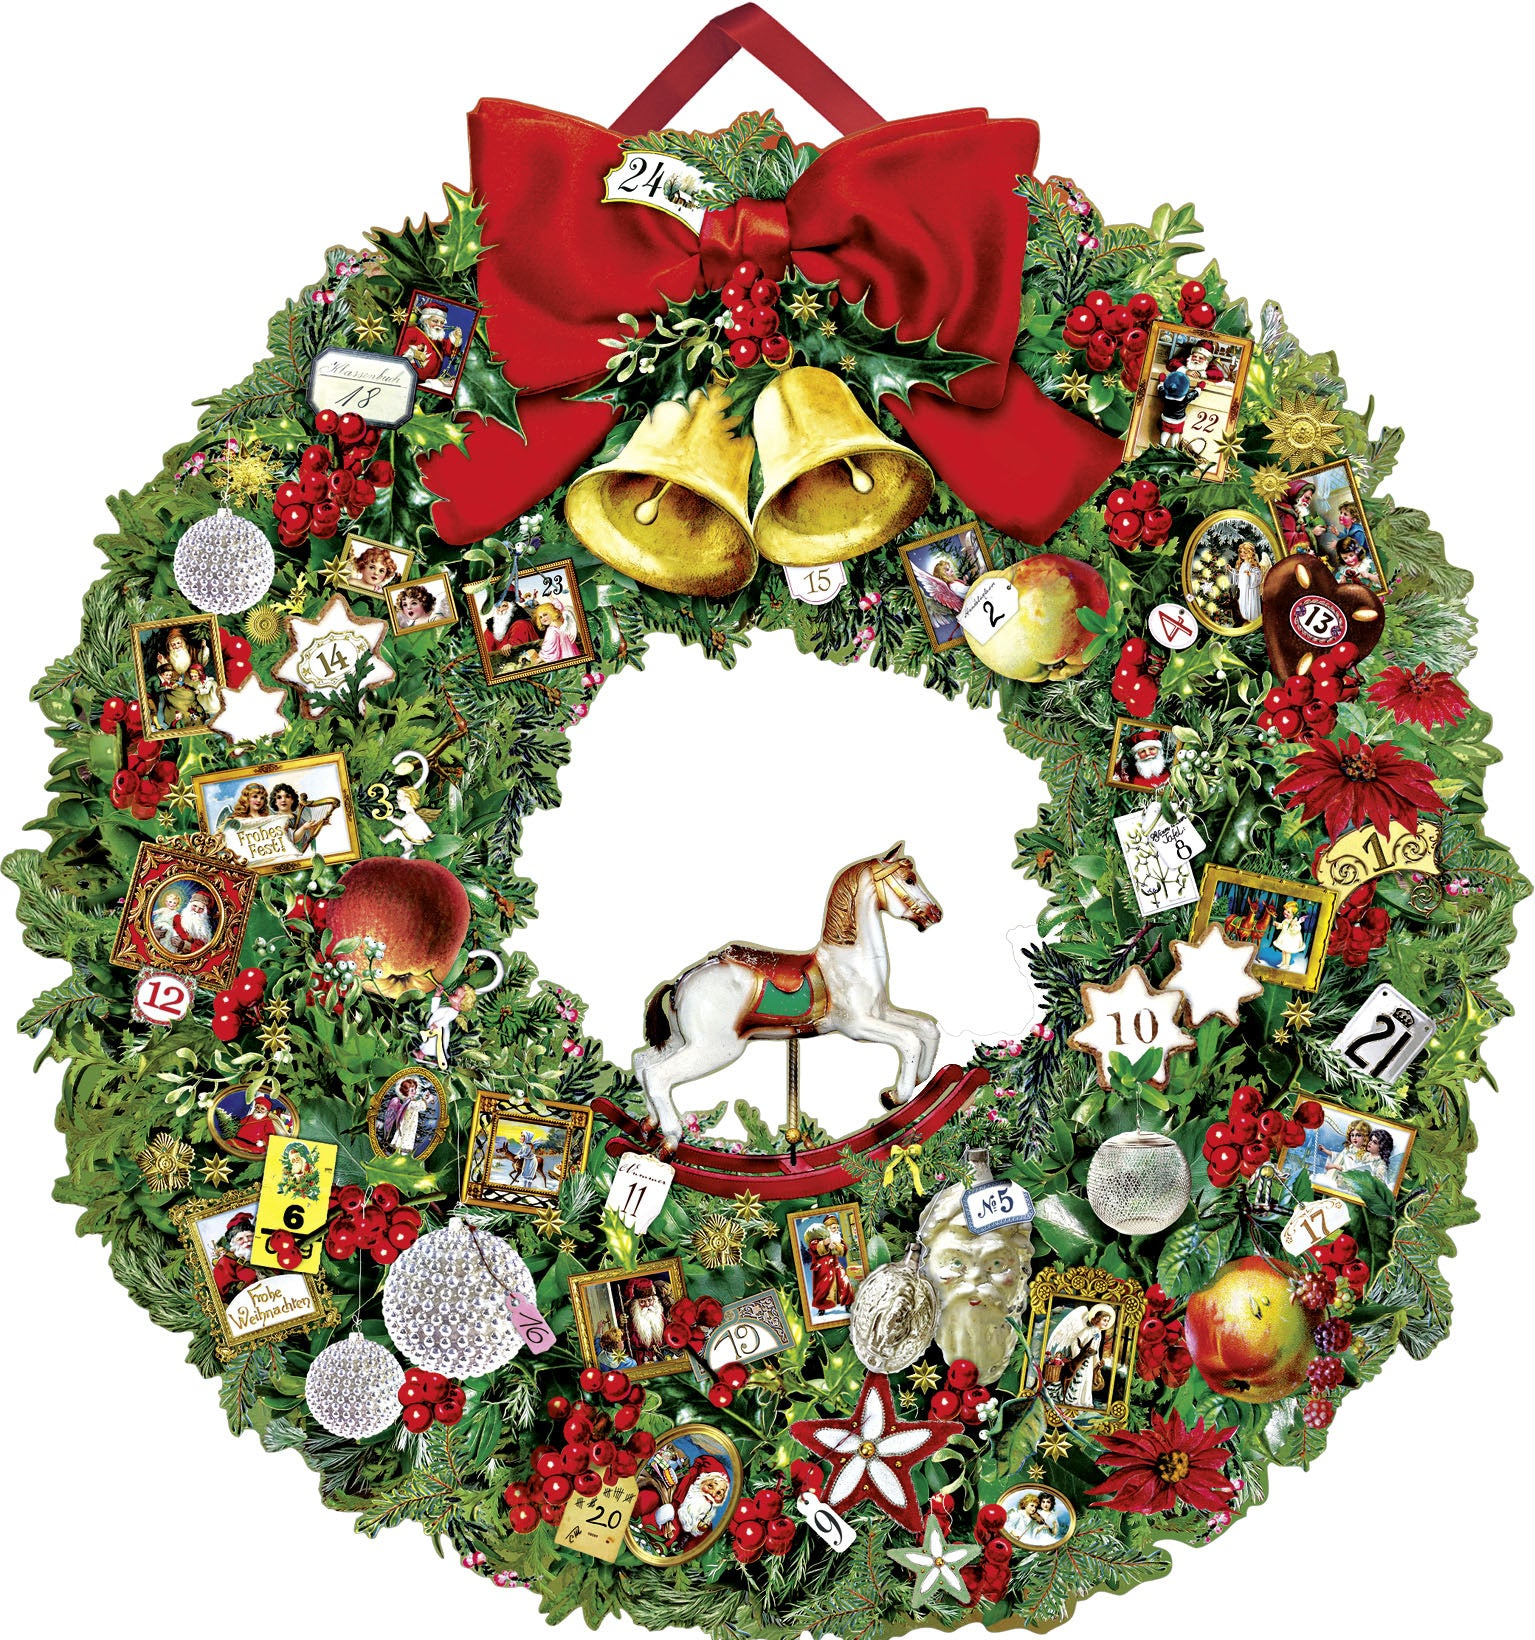 Advent Calendar - Victorian Christmas Wreath